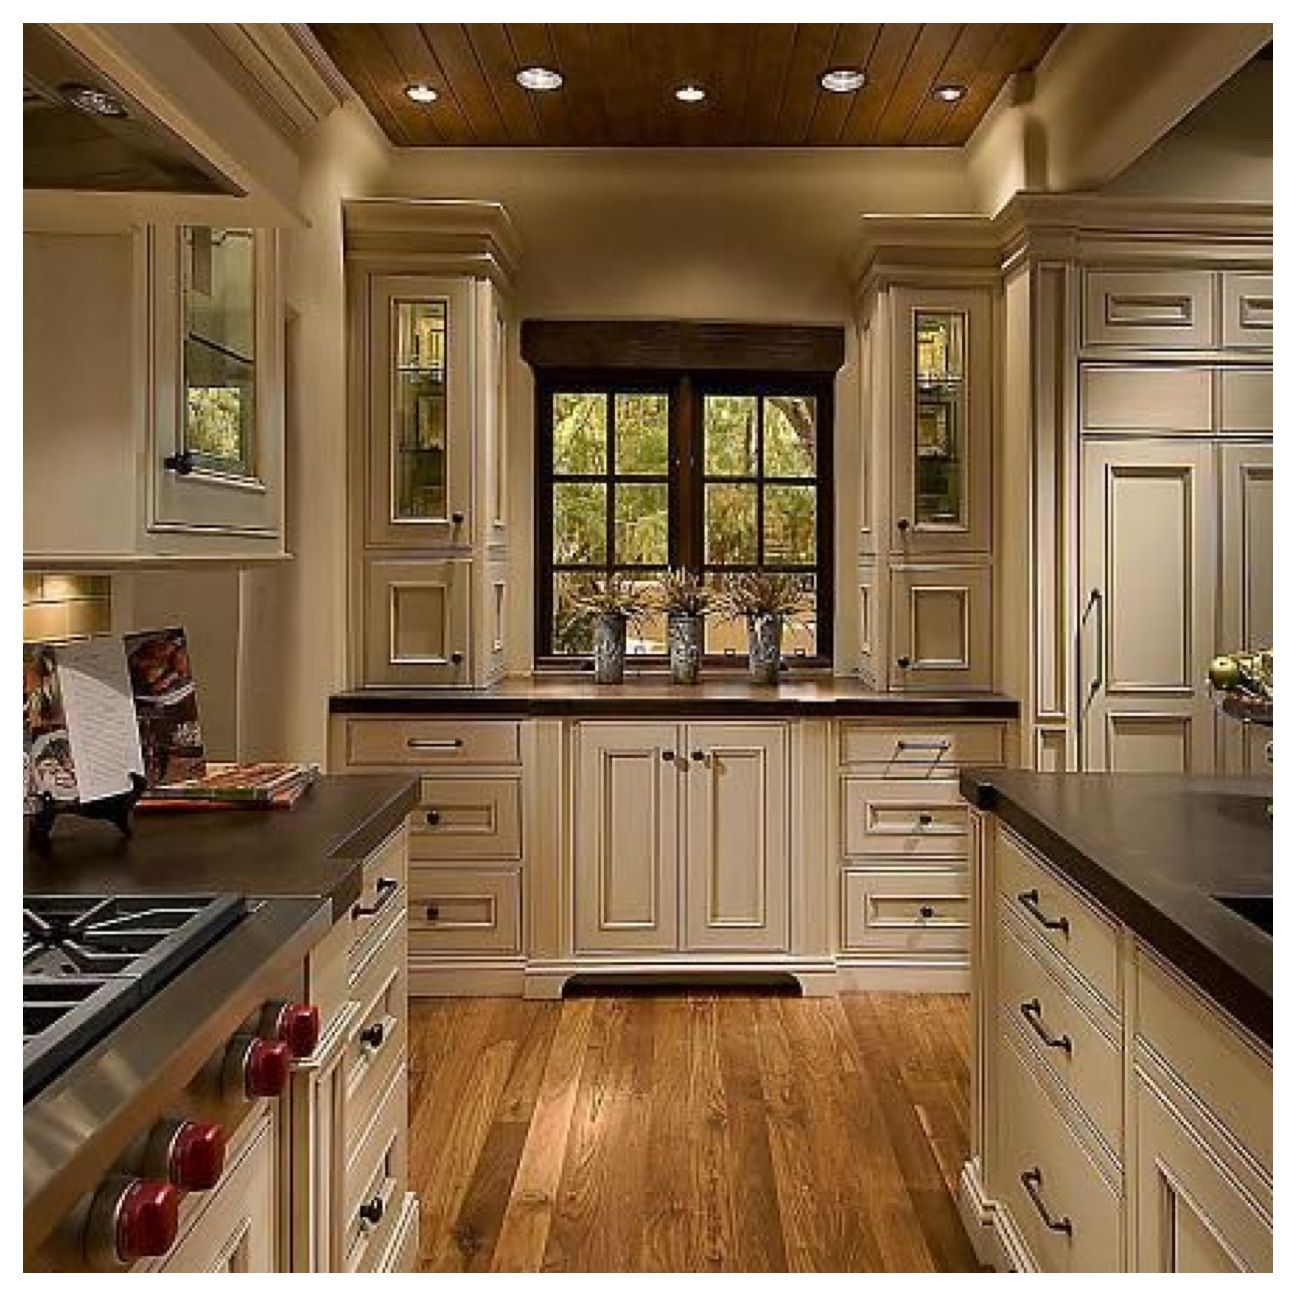 Cabinets Will Be Solid Cherry Wood White Flat Paneled With Glass Inserts In The Side Upper Cabinets White Kitchen Rustic Antique White Kitchen Rustic Kitchen